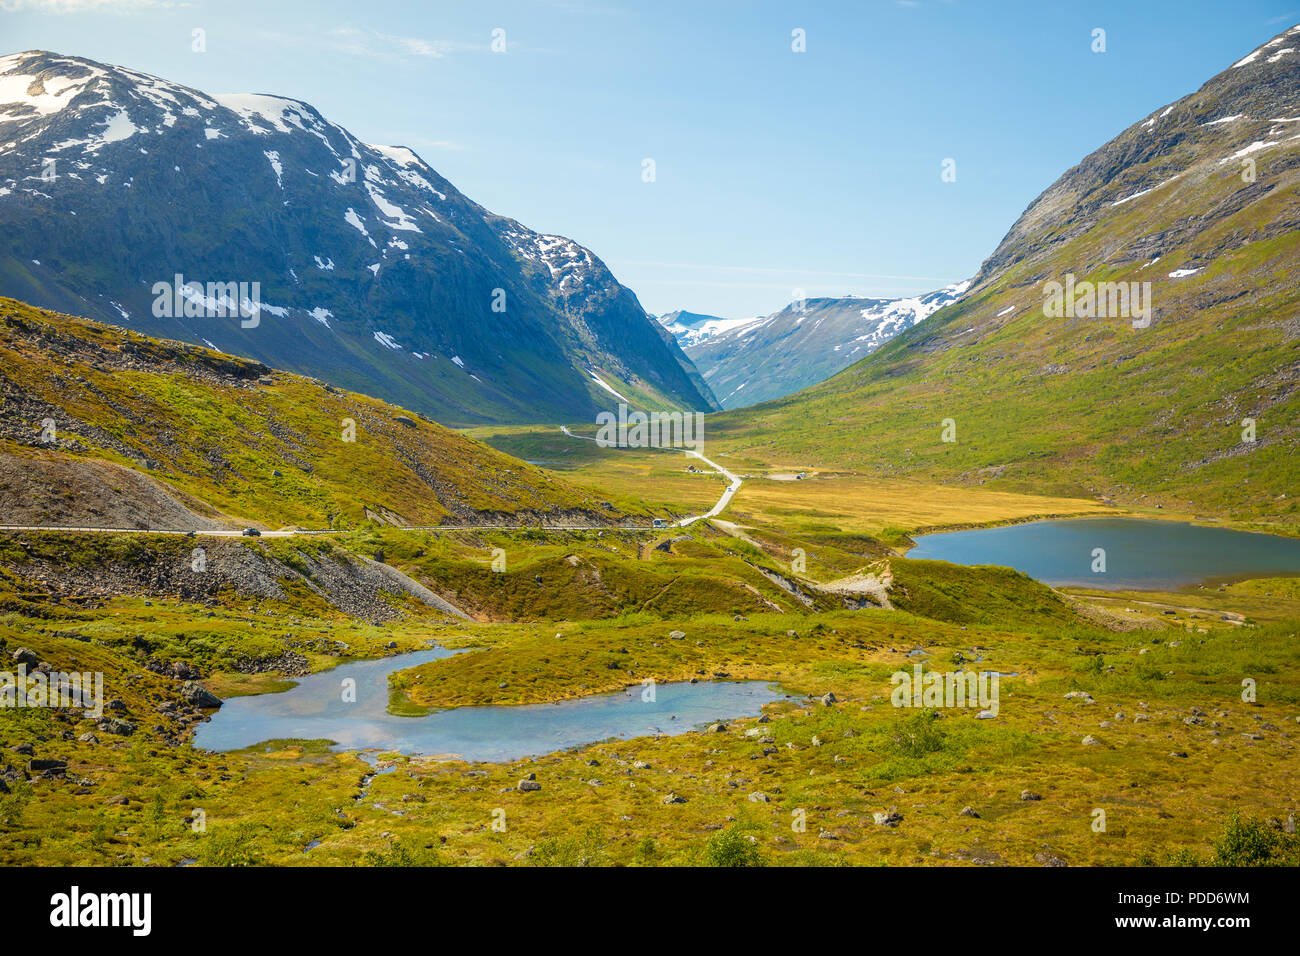 Beautifull road landscape of Norway countryside, Scandinavia - Stock Image